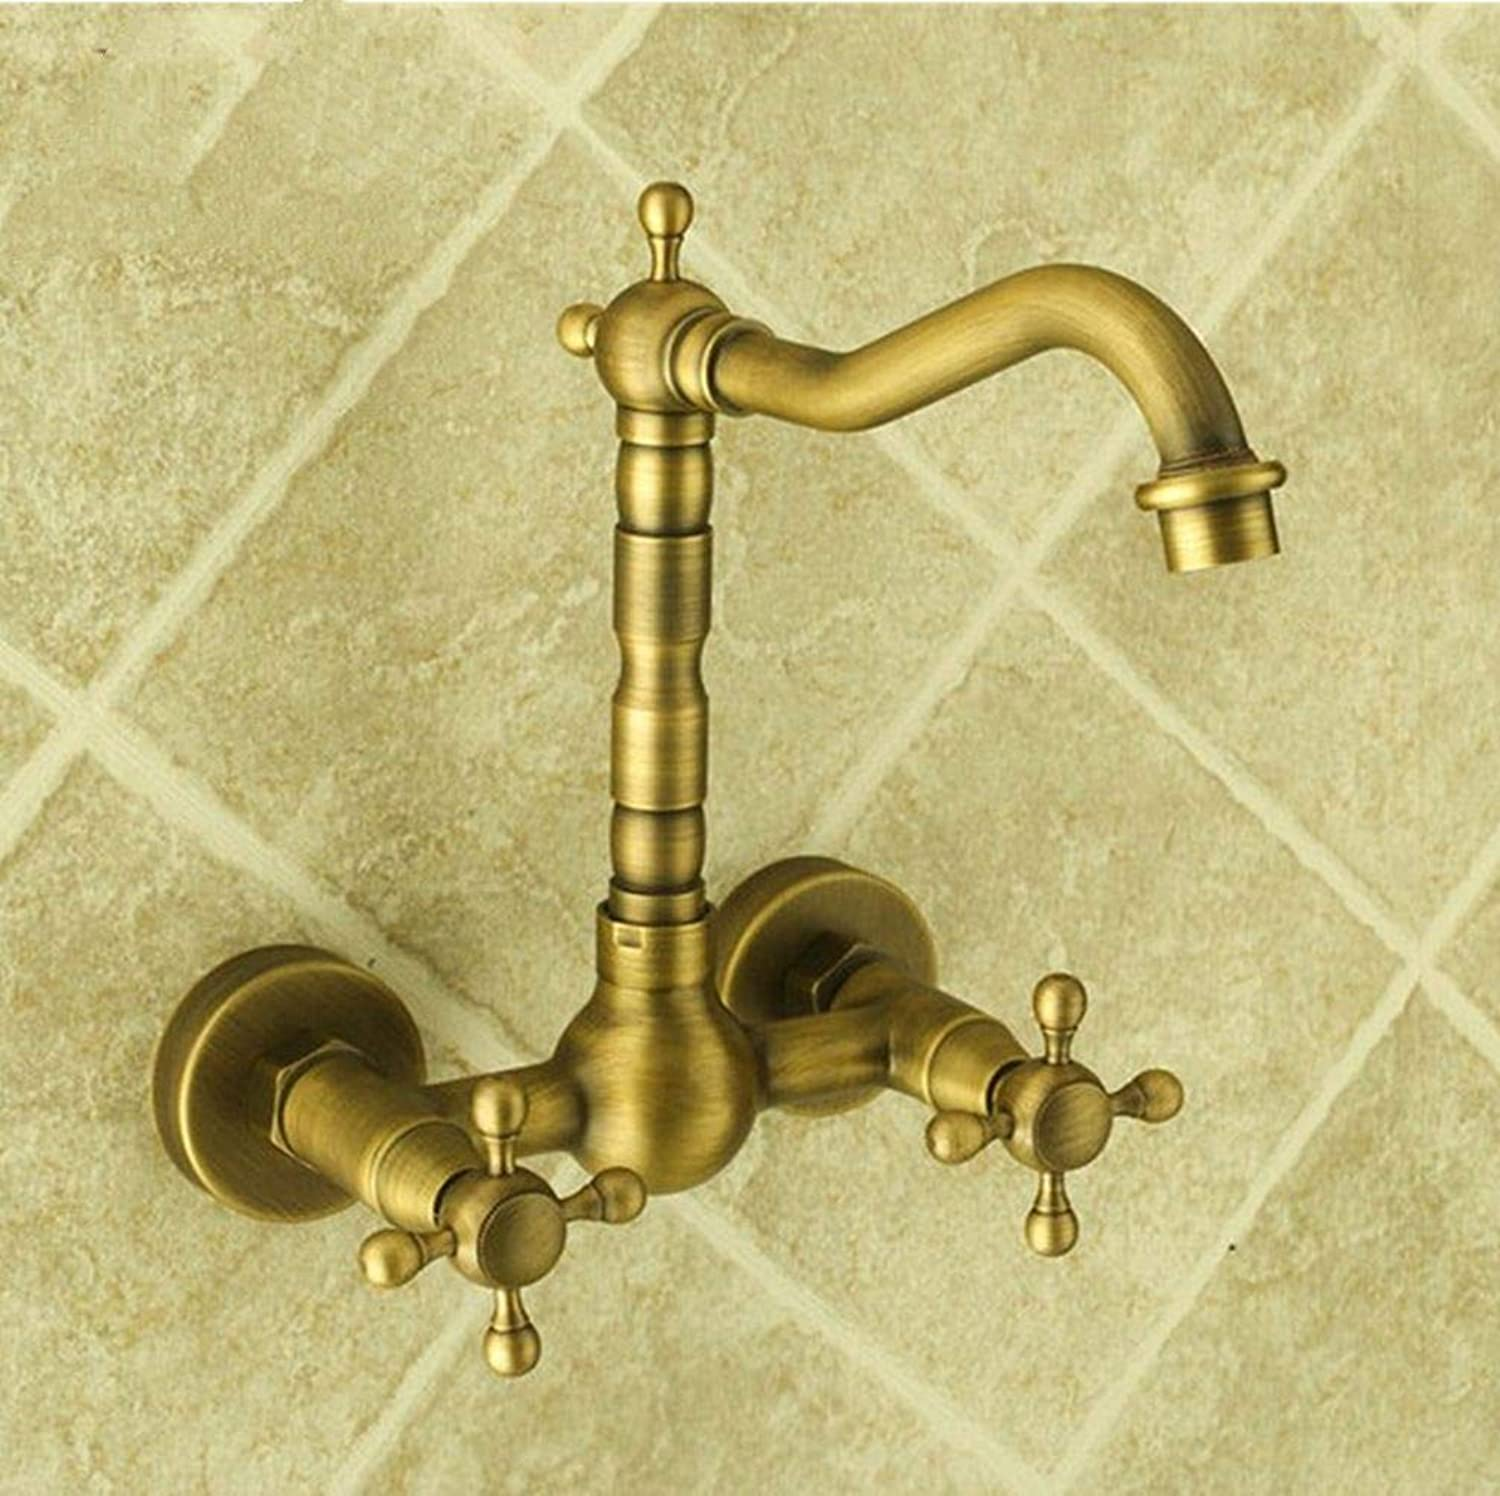 FZHLR Classic Wall Mount Antique Brass Faucets Kitchen Tap Basin Faucets Hot and Cold Mixer Wash Basin Tap